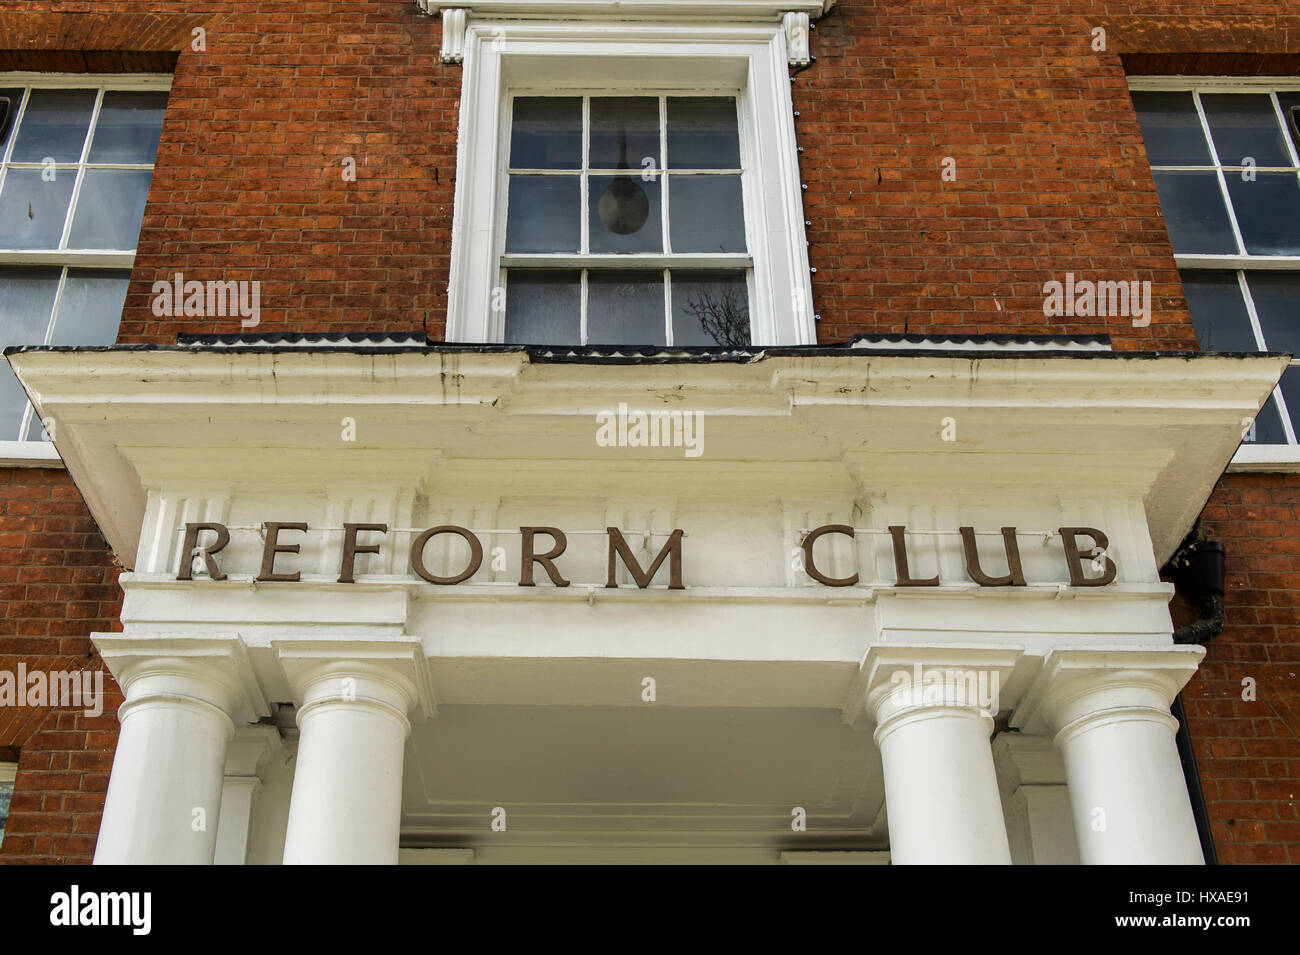 Facade of the Reform Club in Coventry, UK. - Stock Image